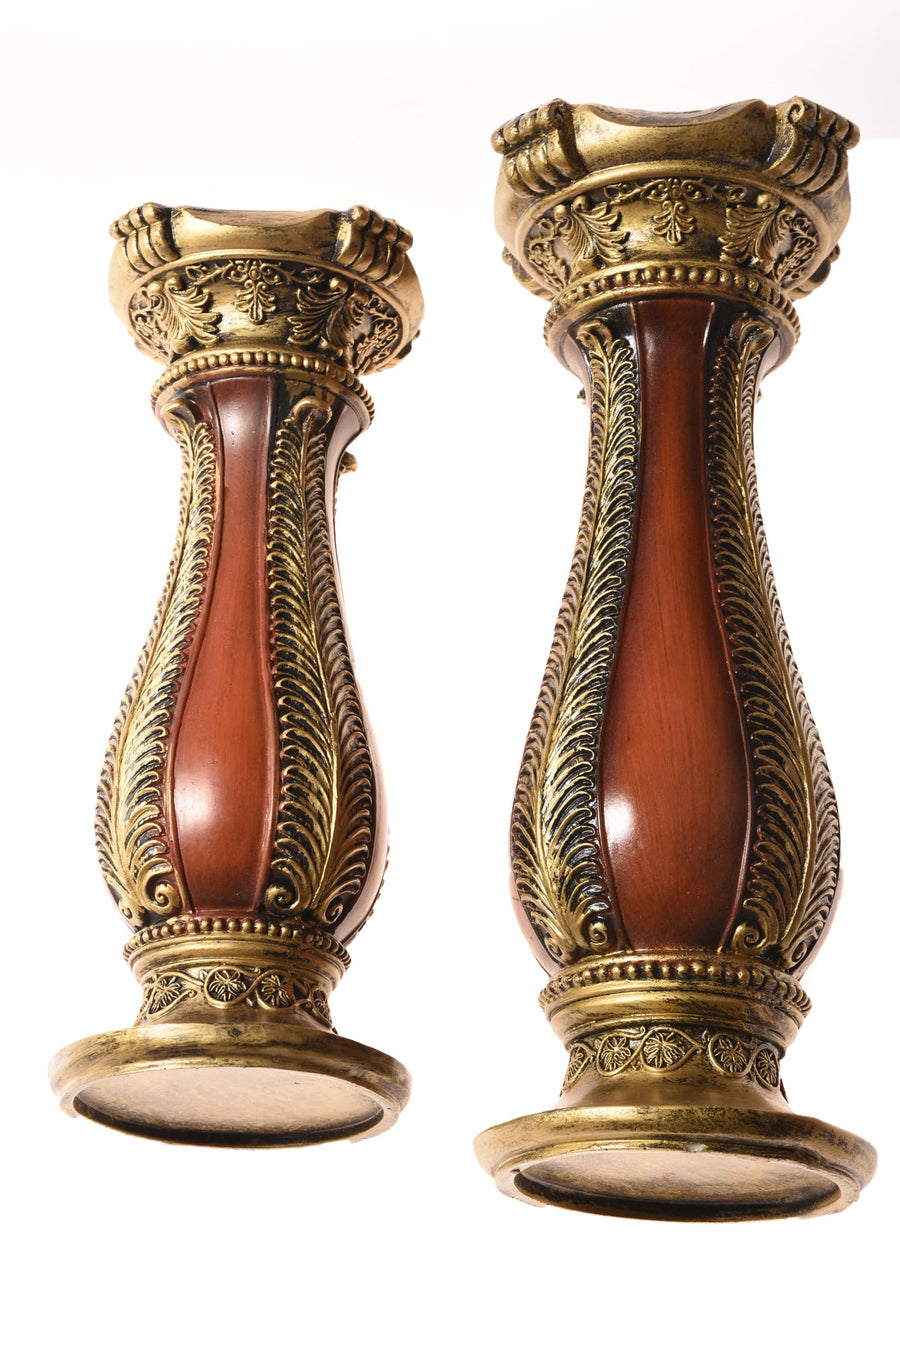 2pc Candle Holder By No Brand